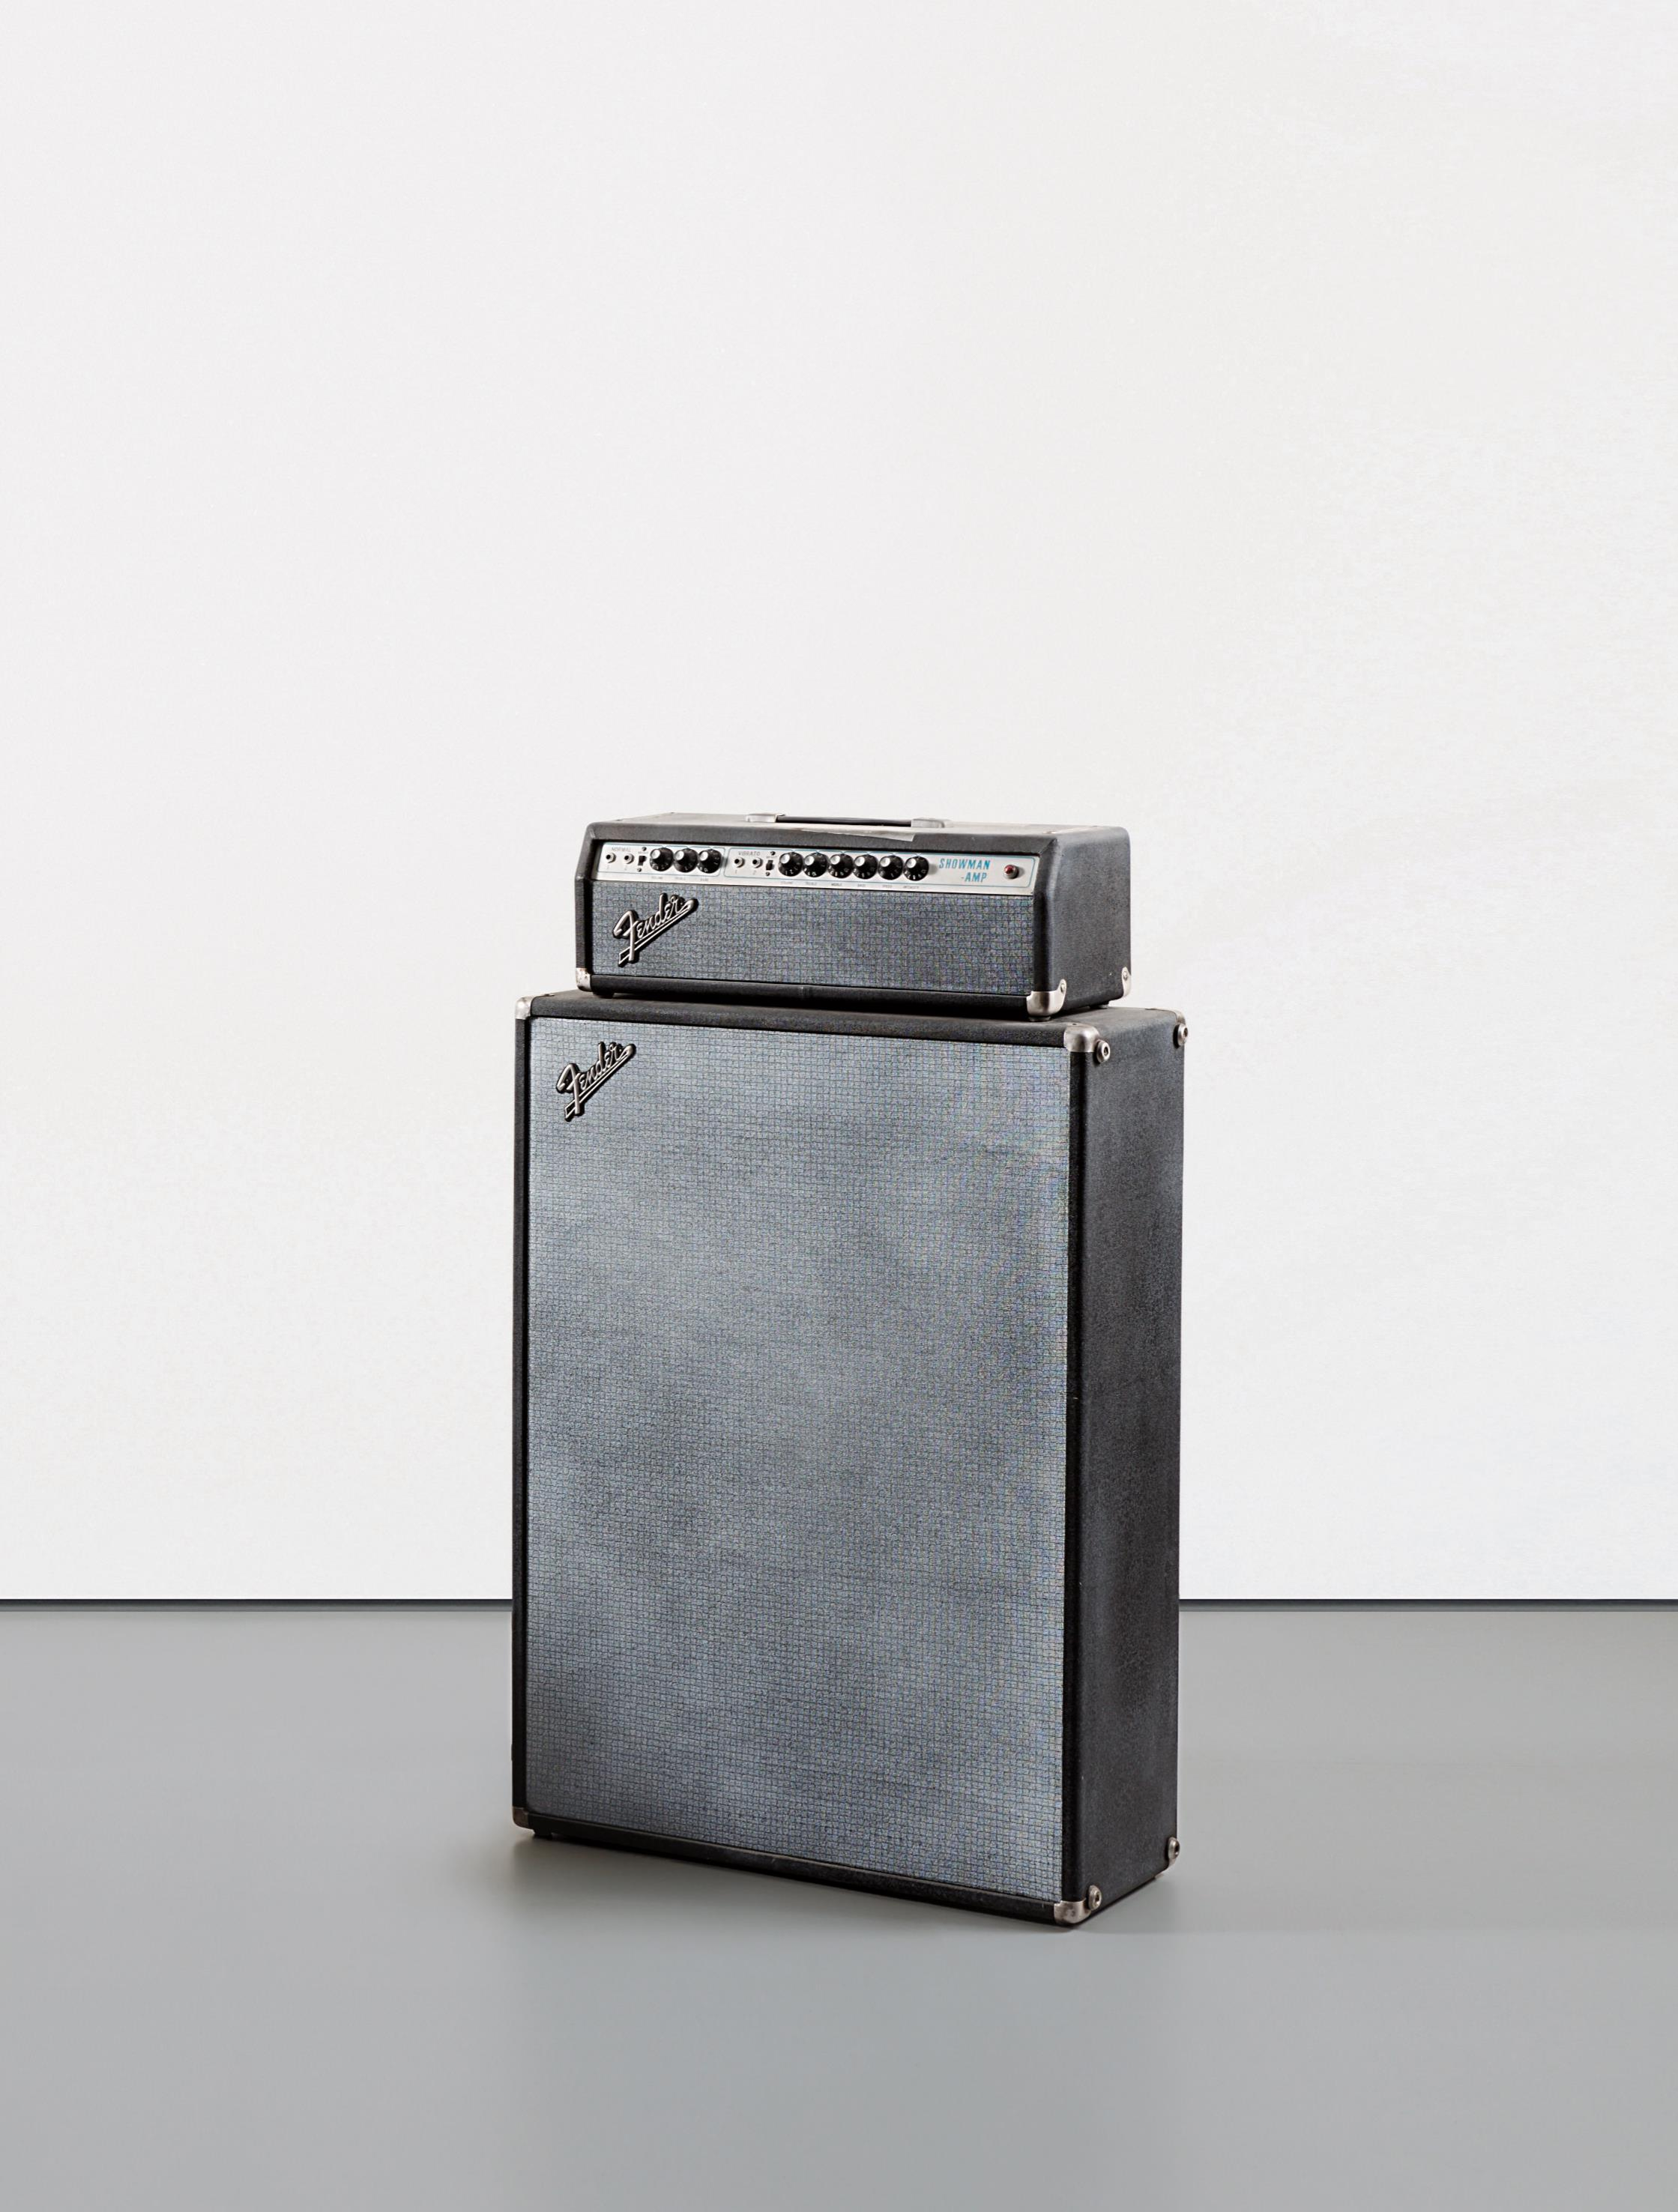 Kaz Oshiro-Fender Showman Amp With Cabinet #2 (Duct Tape & Cigarette Burn)-2002